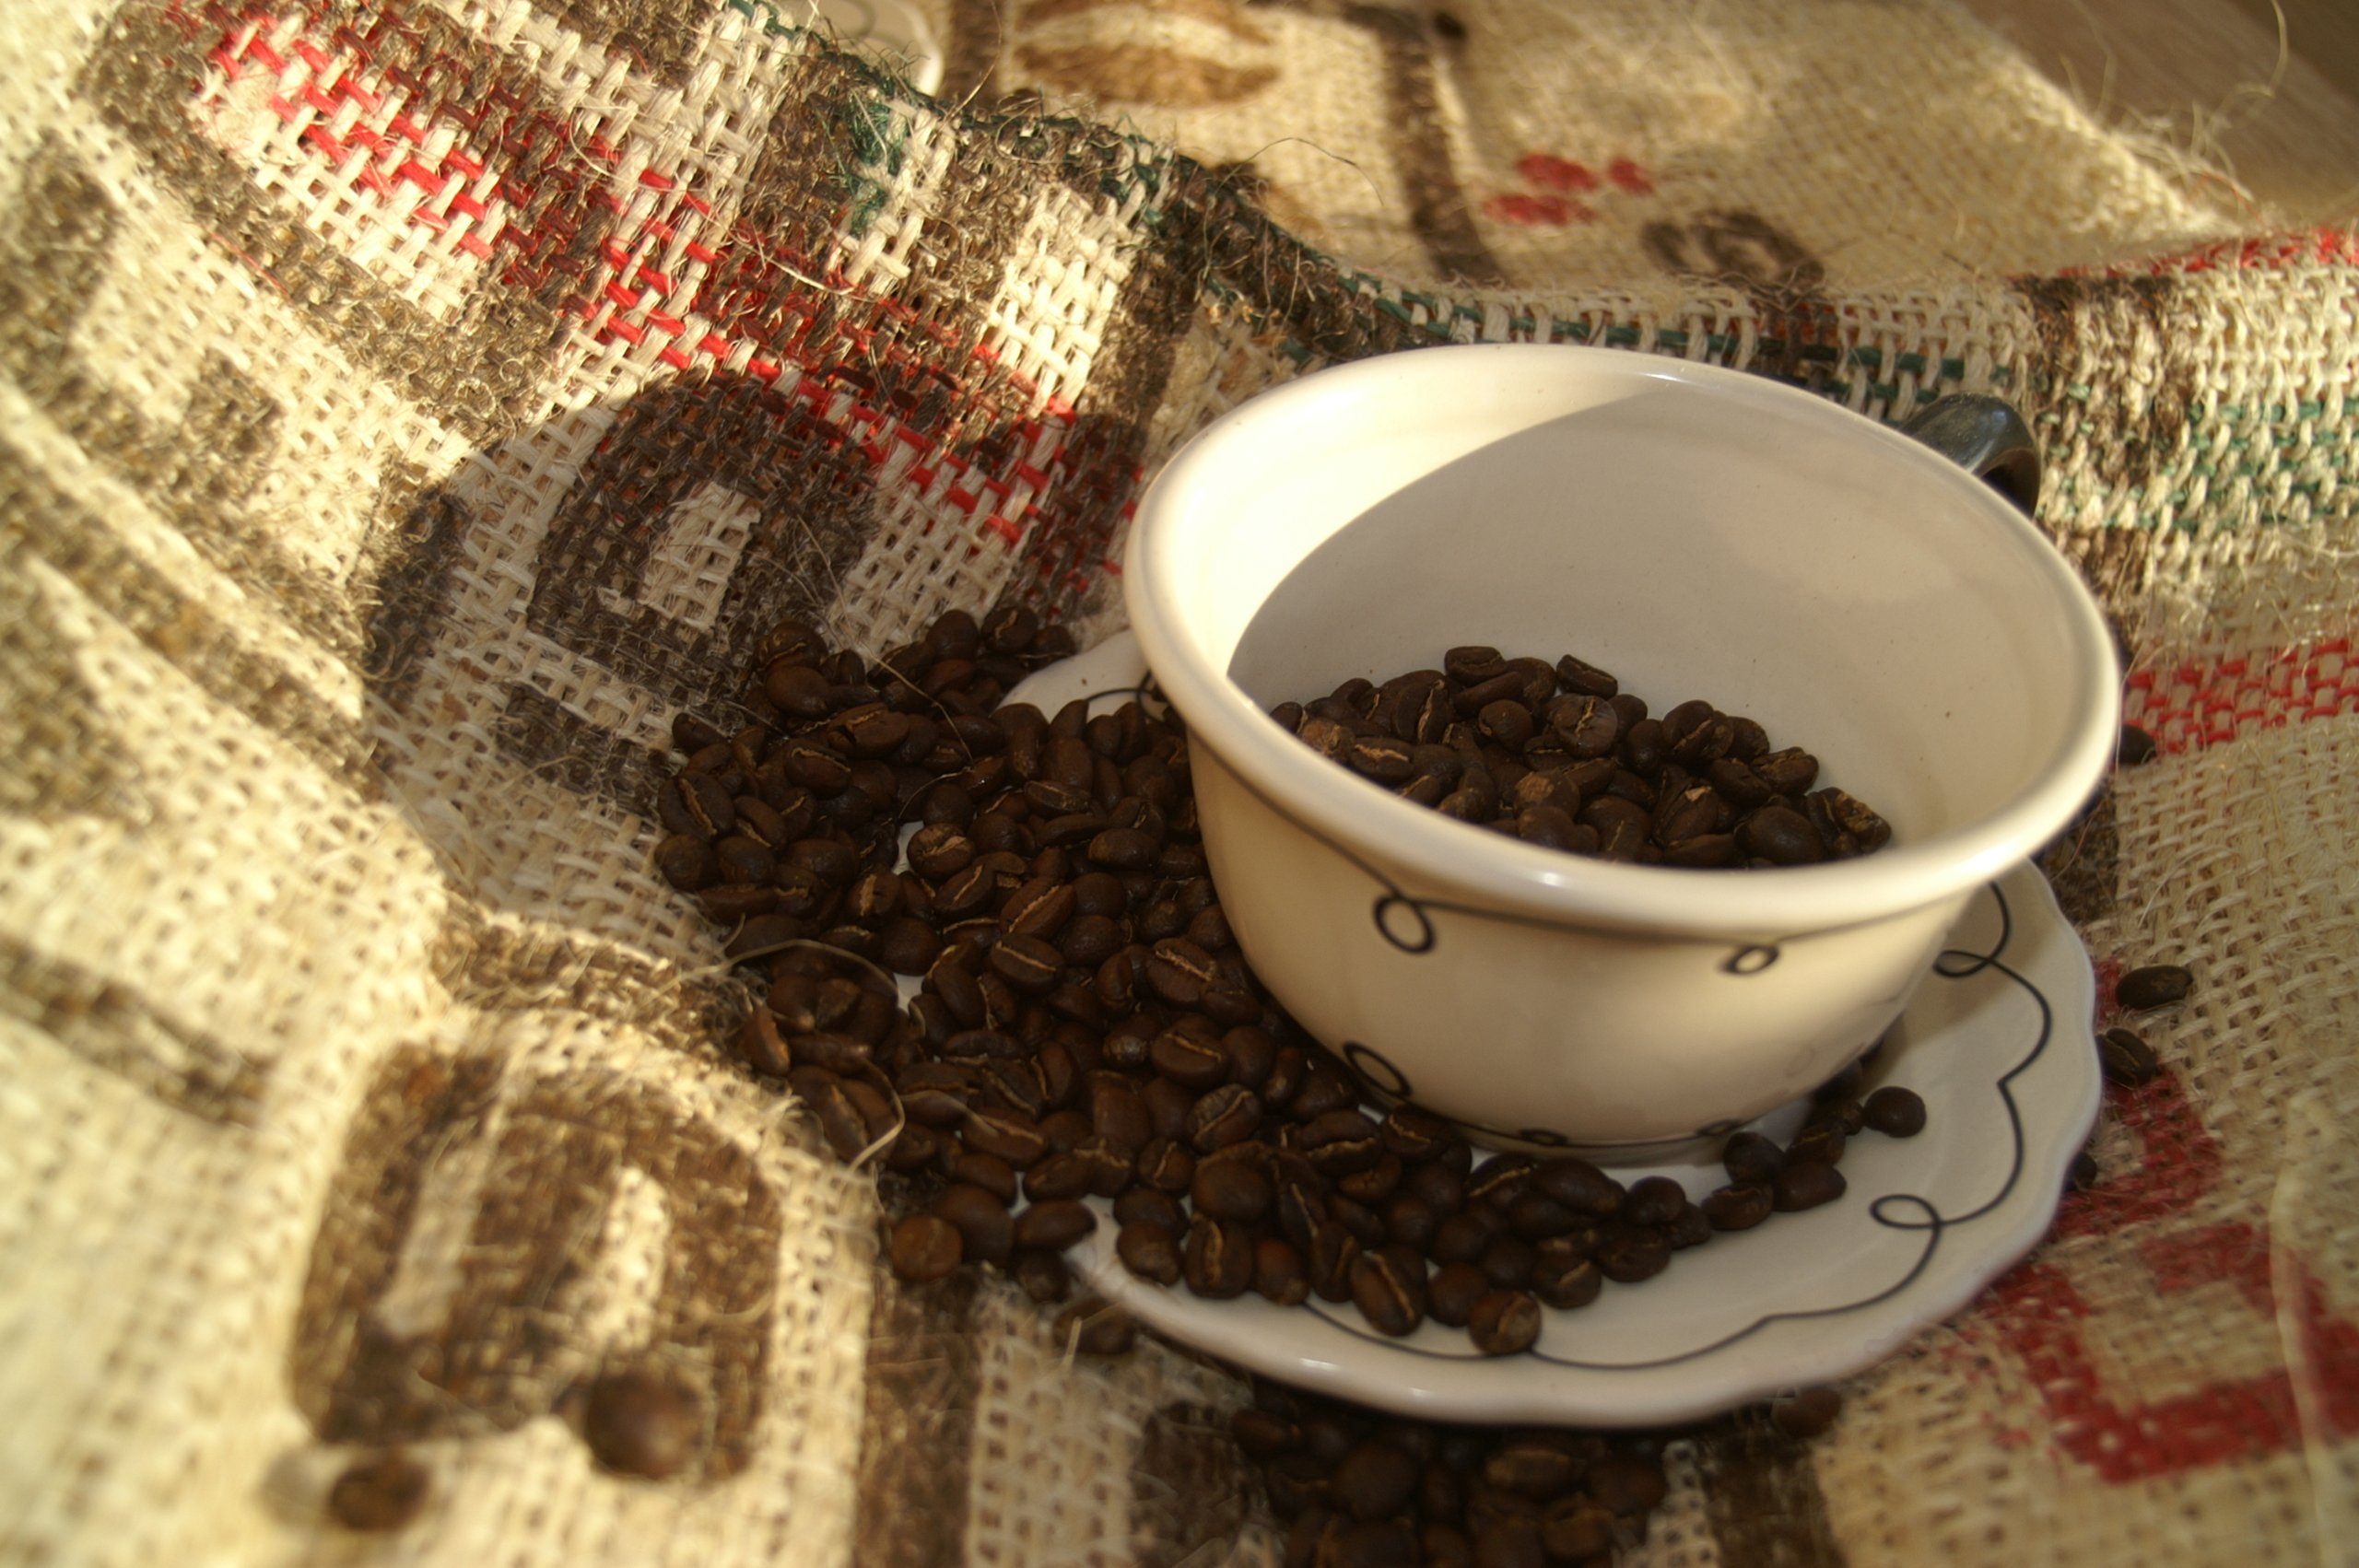 Colombian Medellin Supremo Unroasted Coffee Beans, 5 Pounds by RhoadsRoast Coffees